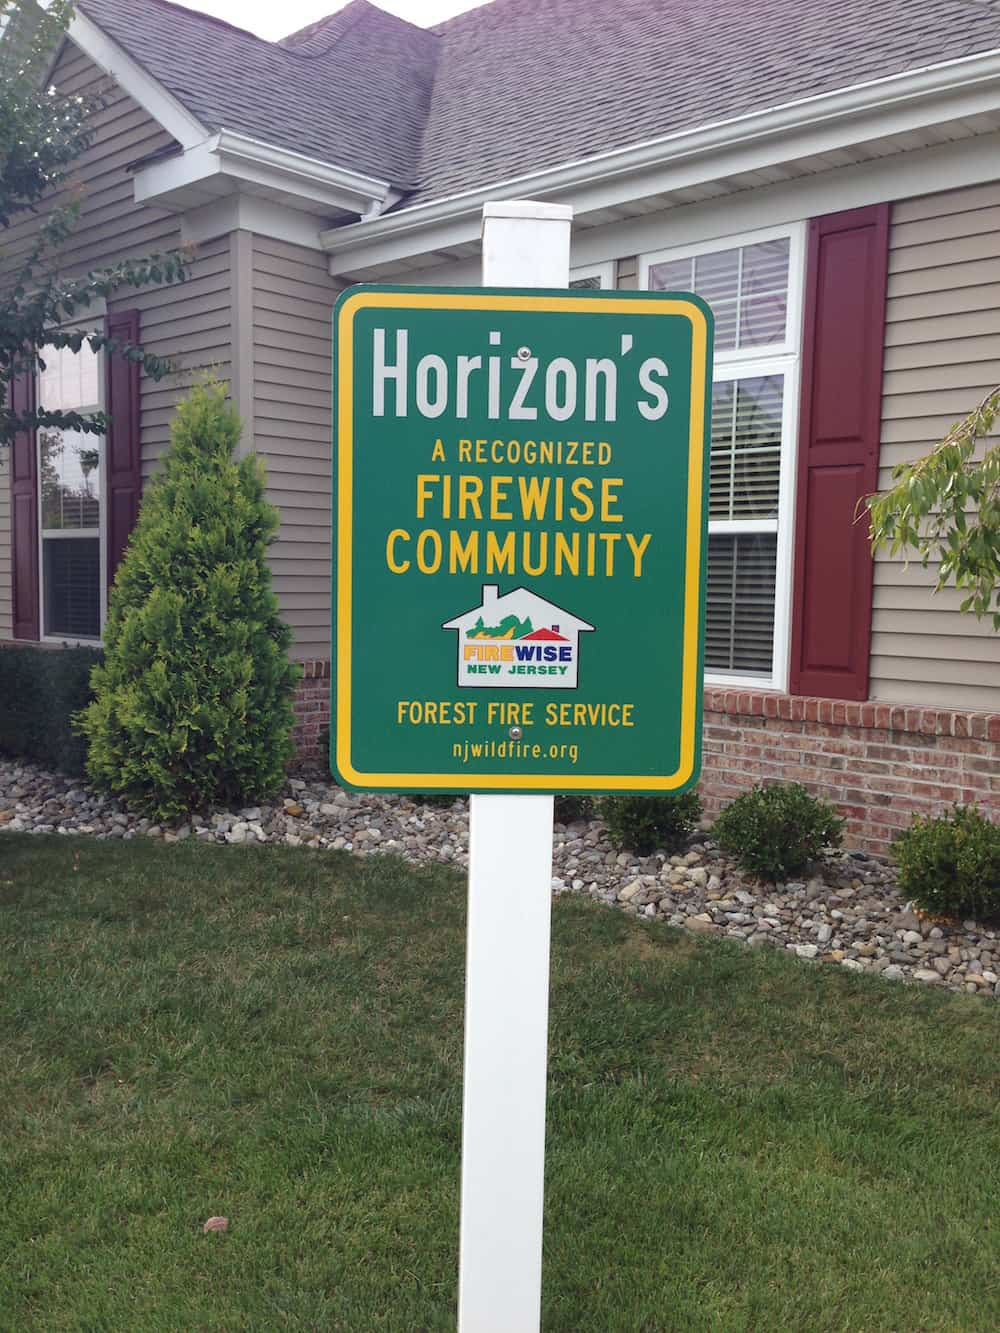 Horizons at Barnegat, an over-55 residential development, was designated as a Firewise Community in 2009. Credit: Wendy Fulks